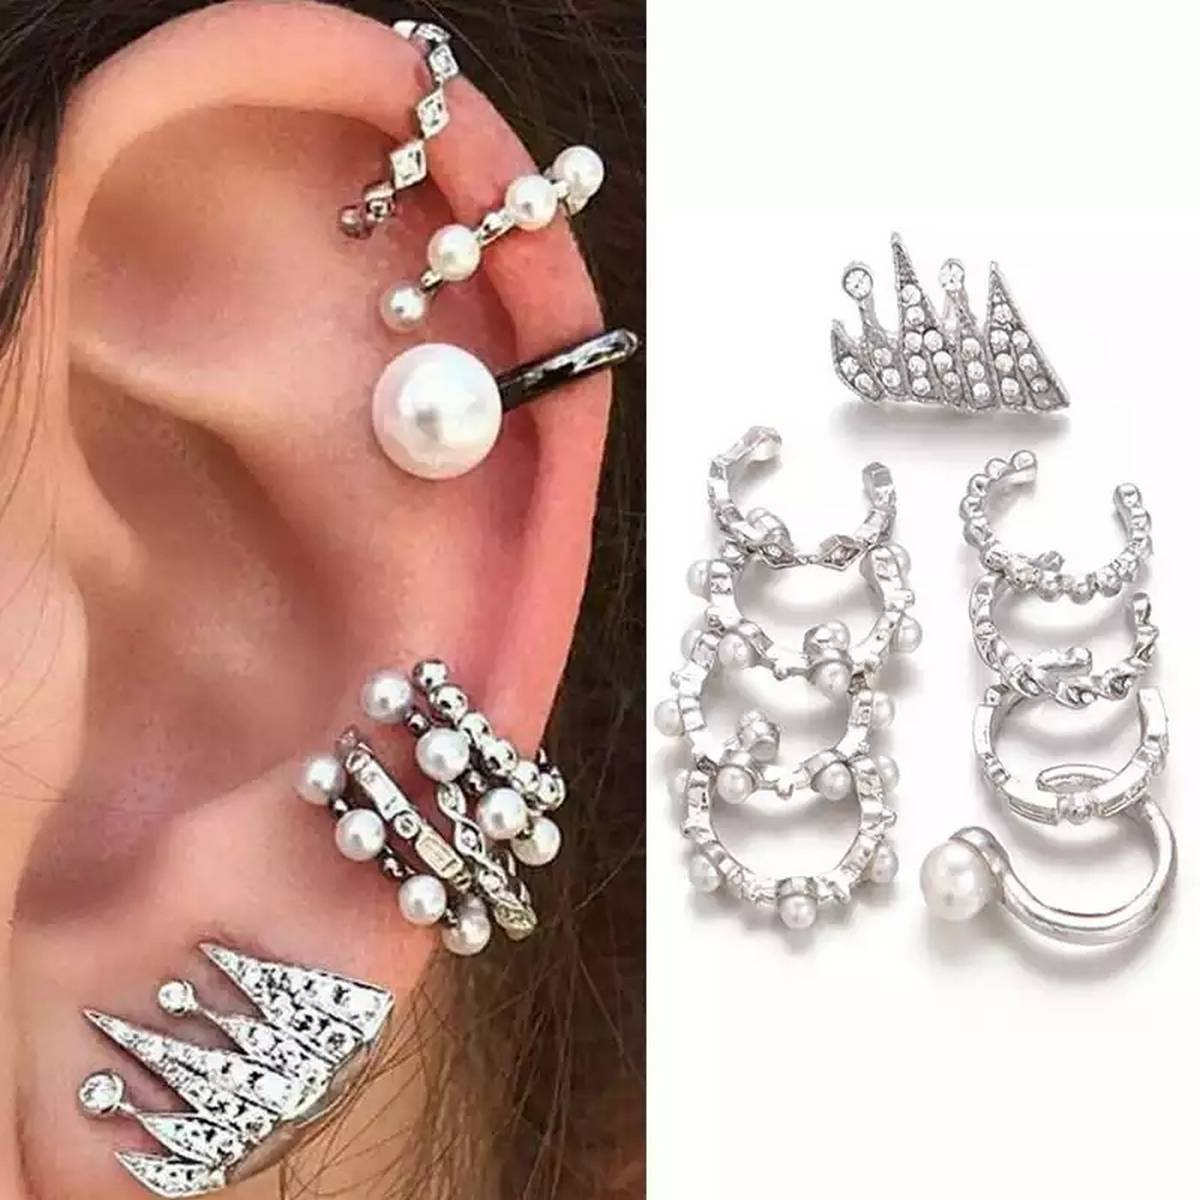 Trend Silver Plated 9 Pcs set of Stud Ear cuffs for Events or Weddings